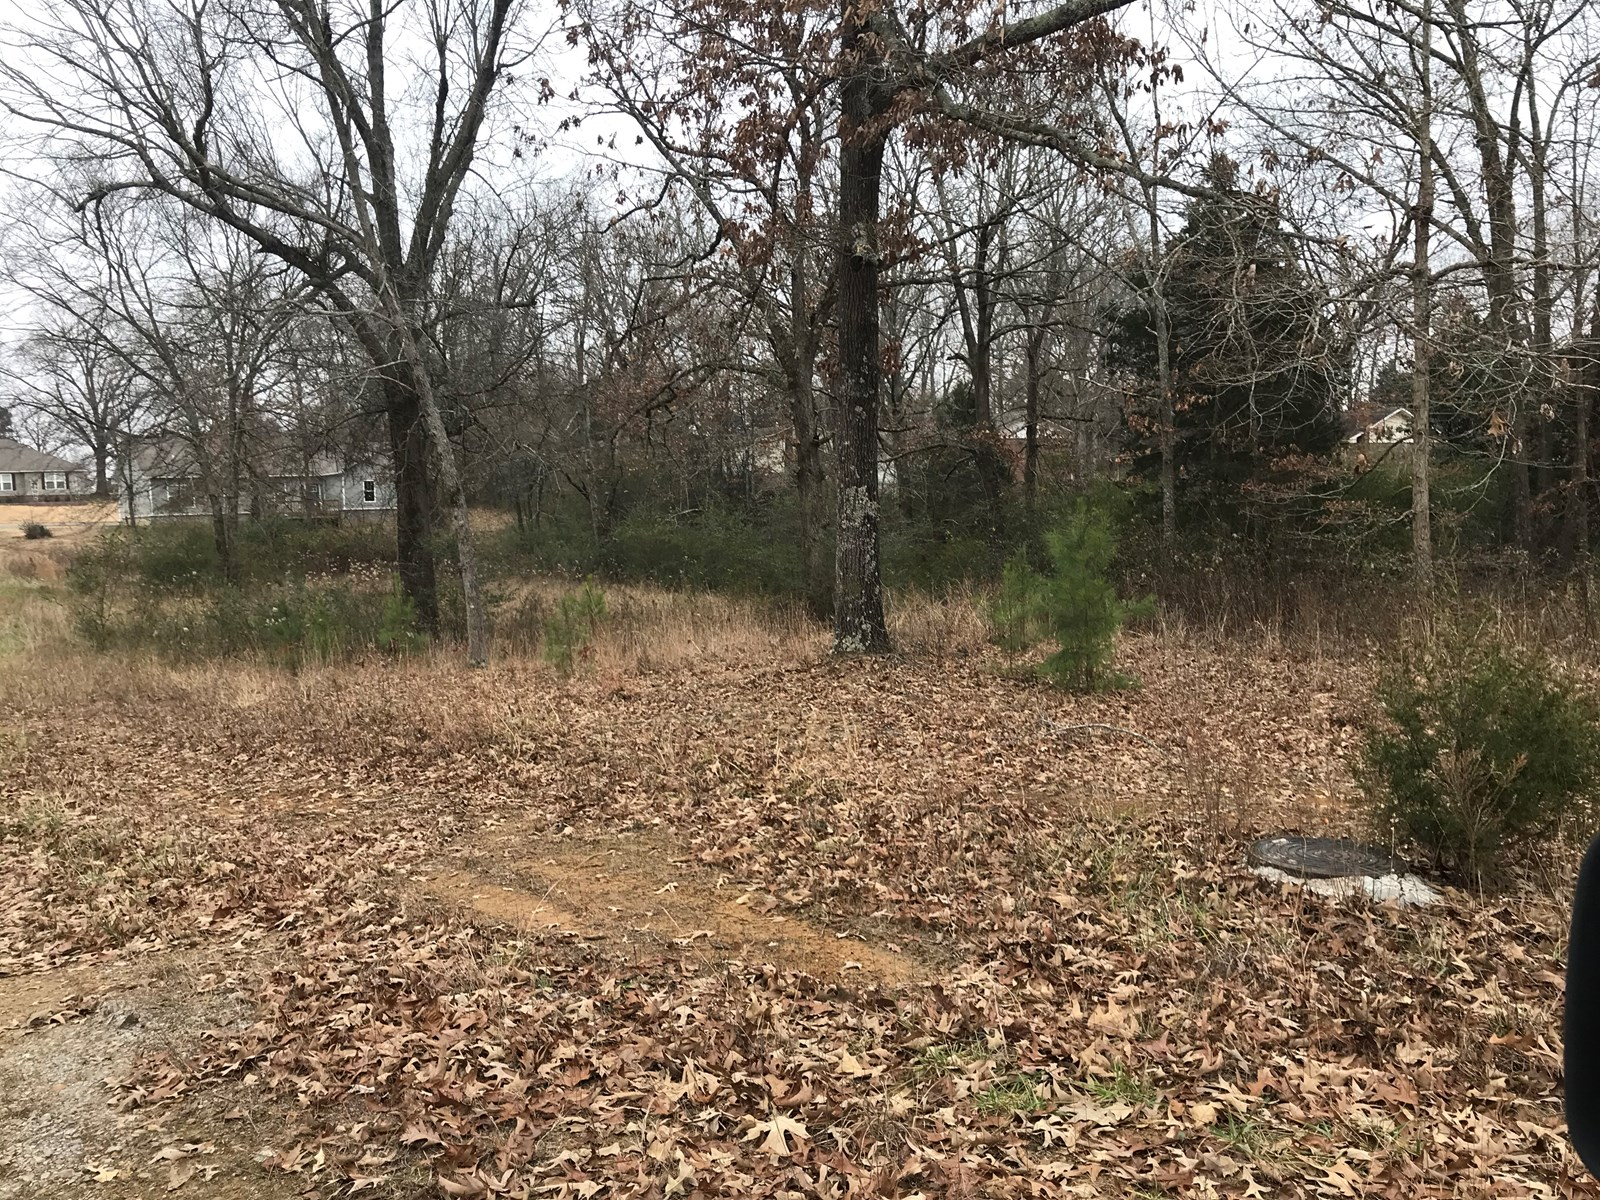 Land for sale lots in Pocahontas, Arkansas for home building